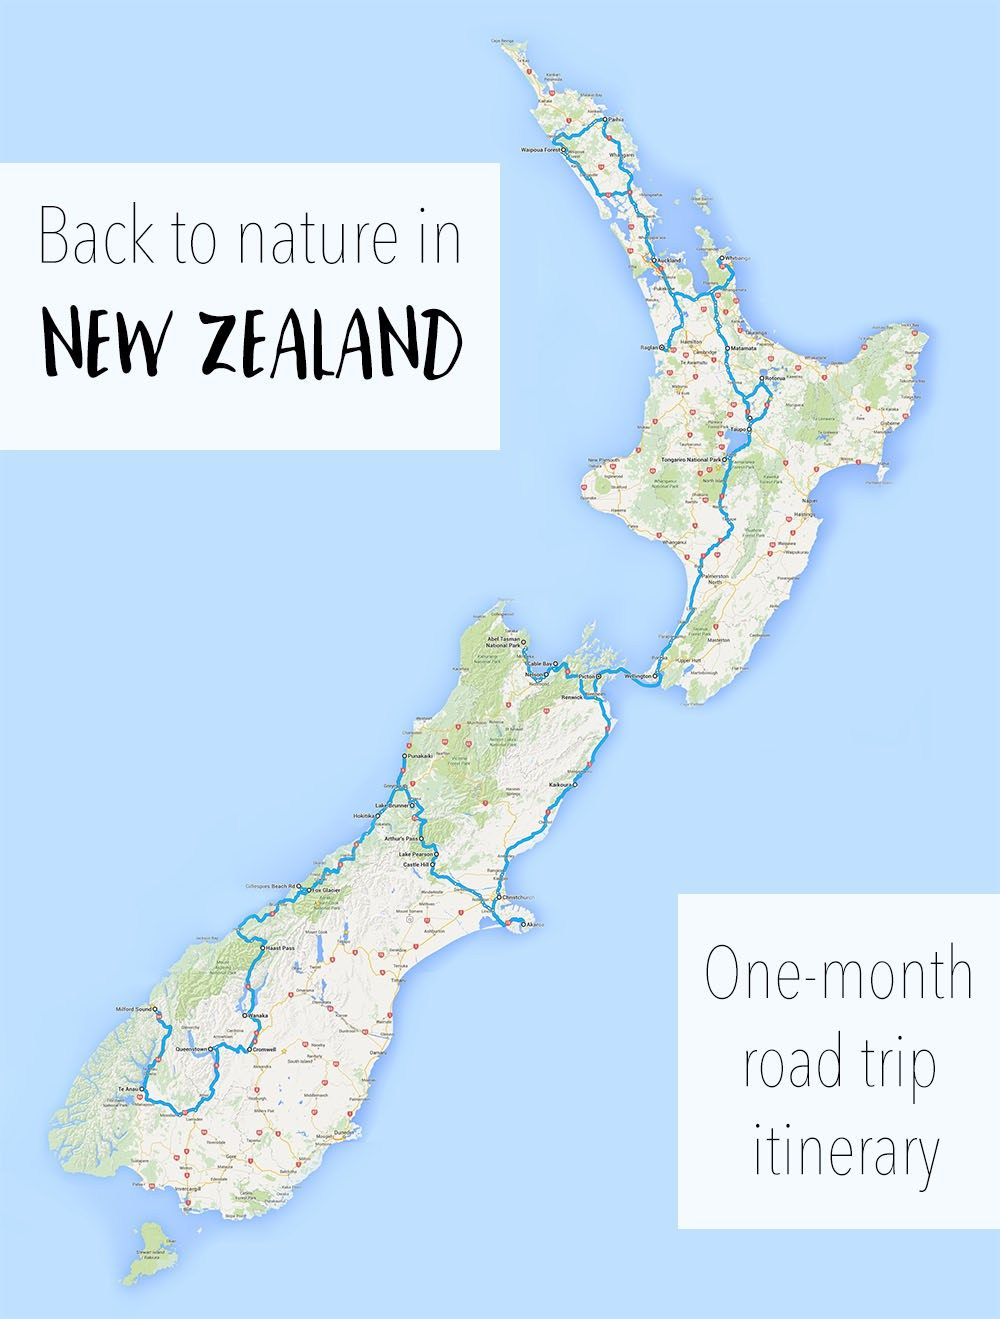 Back To Nature New Zealand Road Trip A One Month Itinerary Neuseeland Reise Road Trip Karte Neuseeland